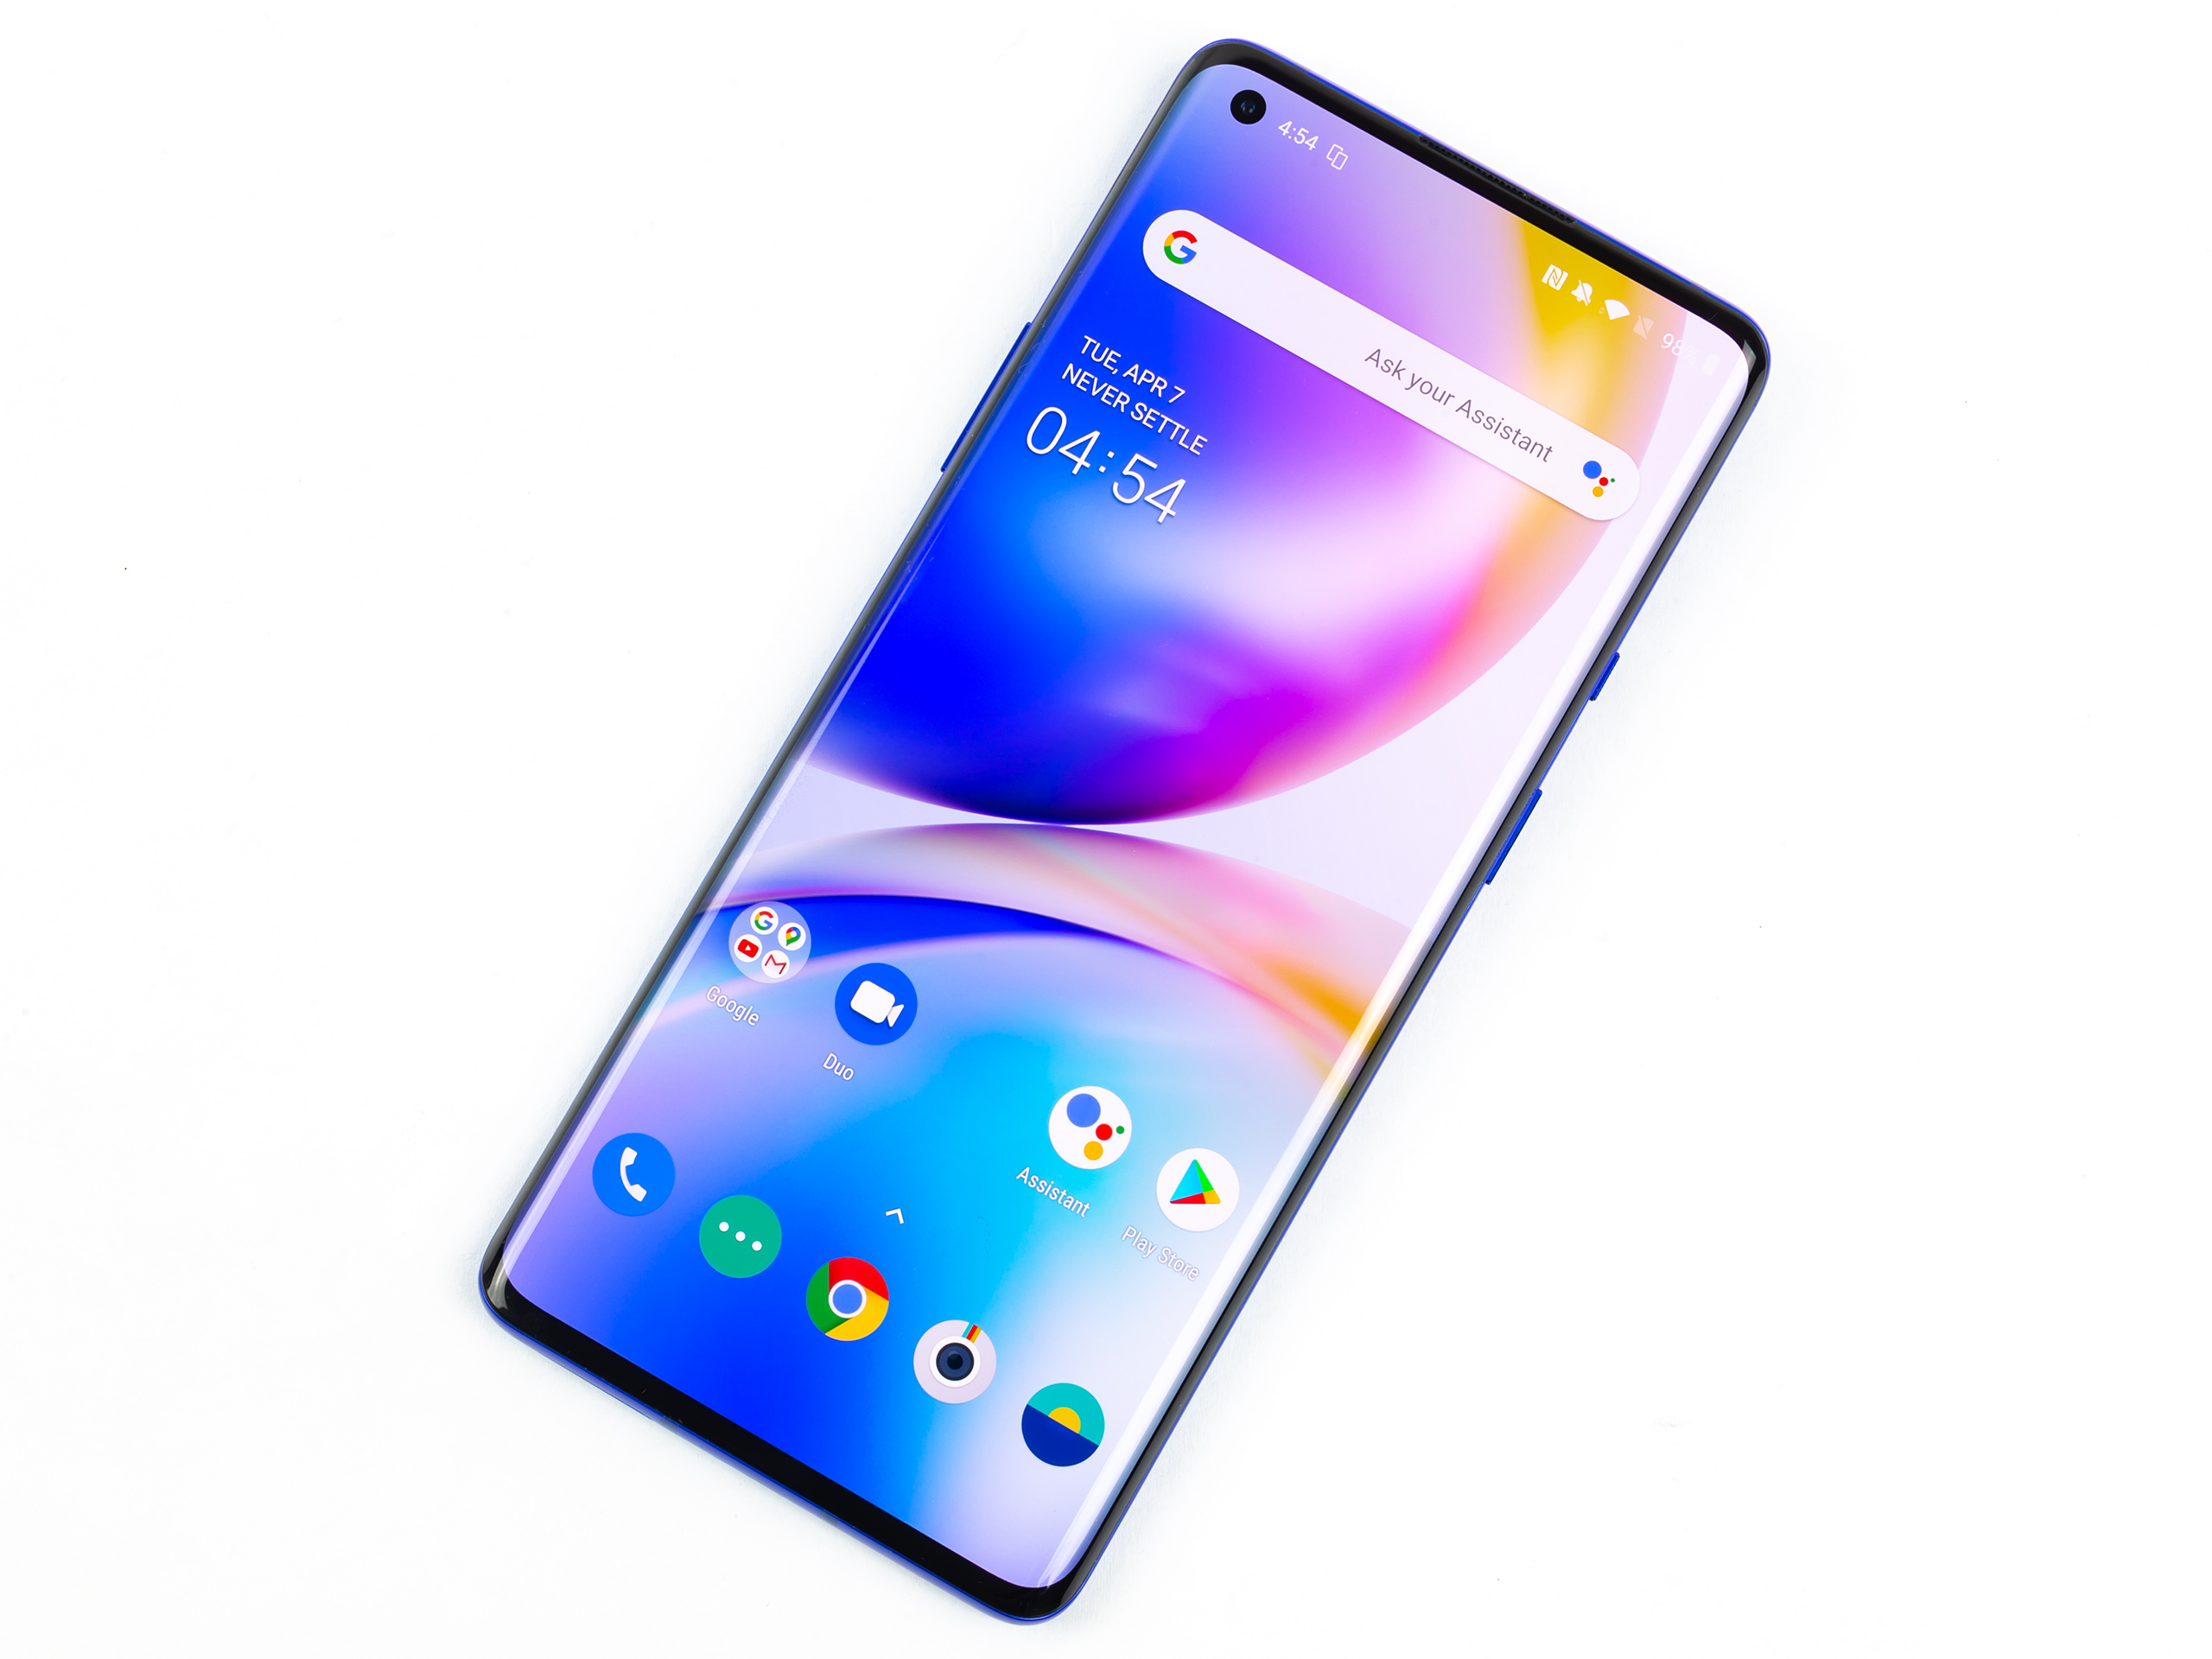 The OnePlus 8 Pro is still one of the best high-end Android phones you can buy.